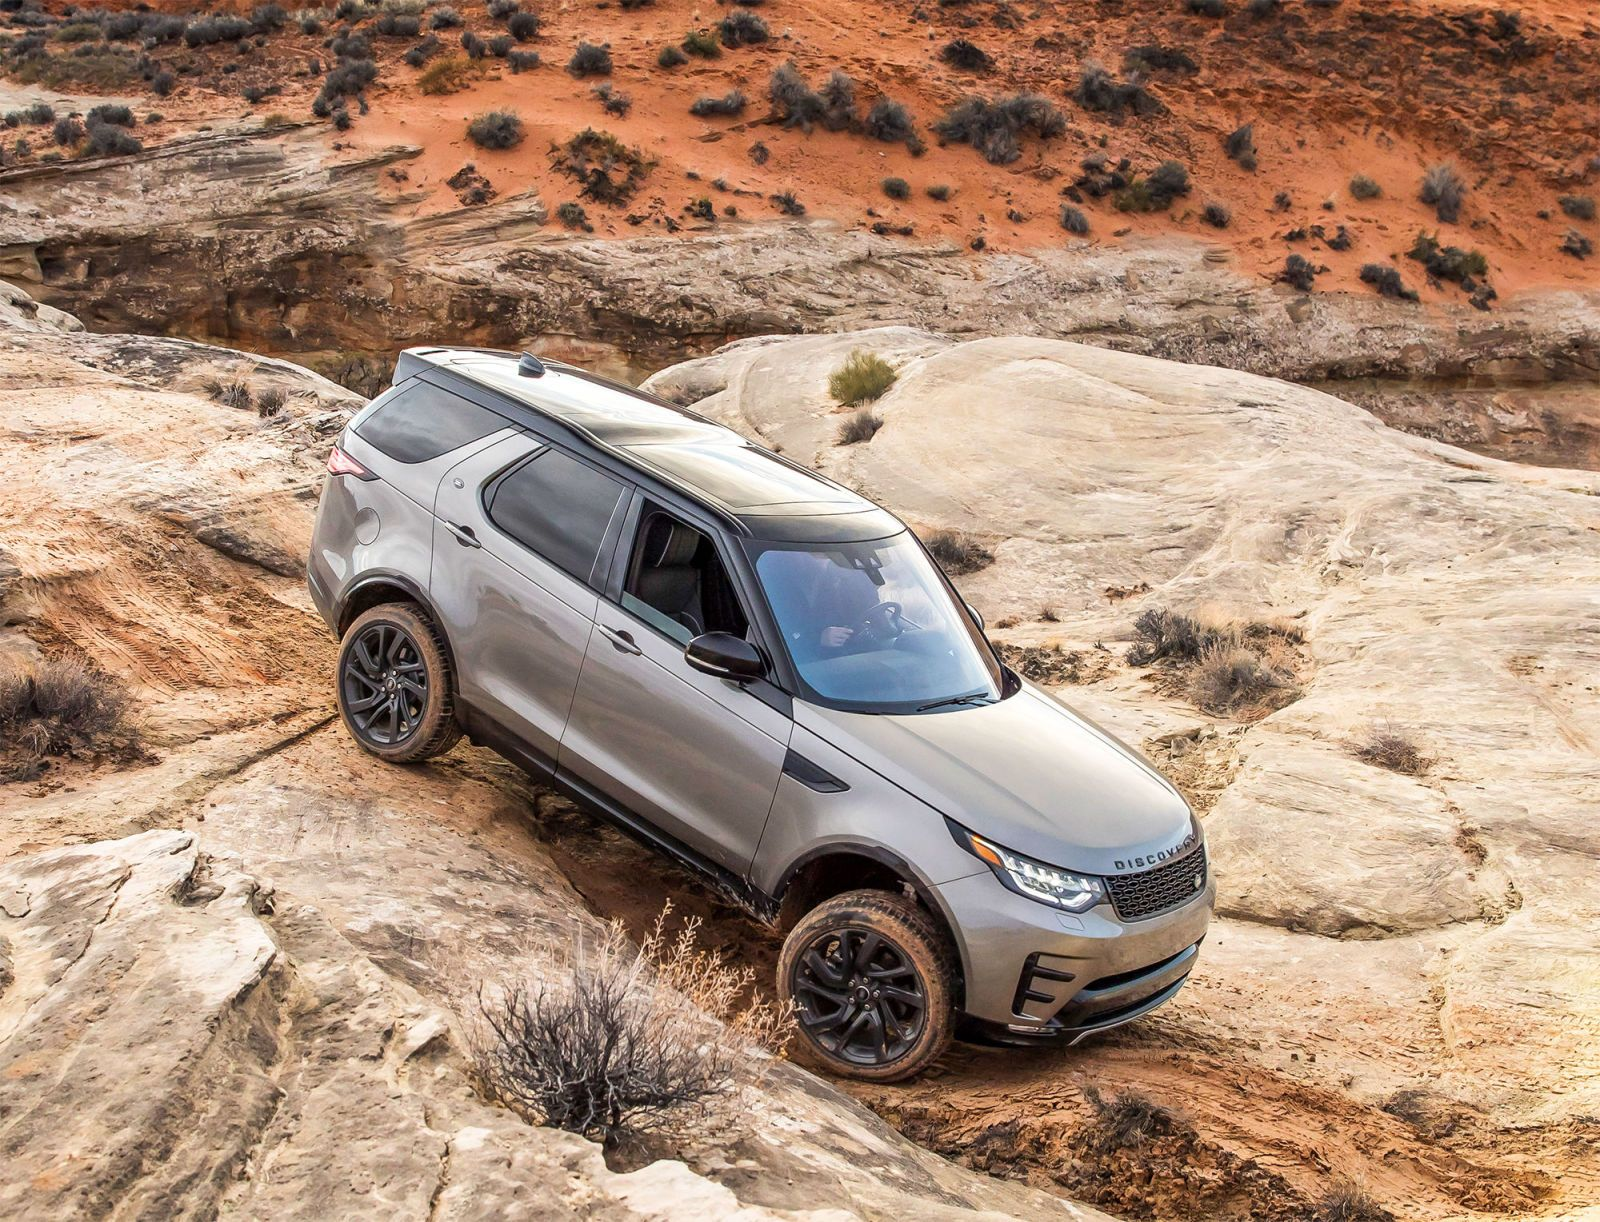 First Drive 2017 Land Rover Discovery Hse Land Rover Discovery Sport Land Rover Discovery Hse Land Rover